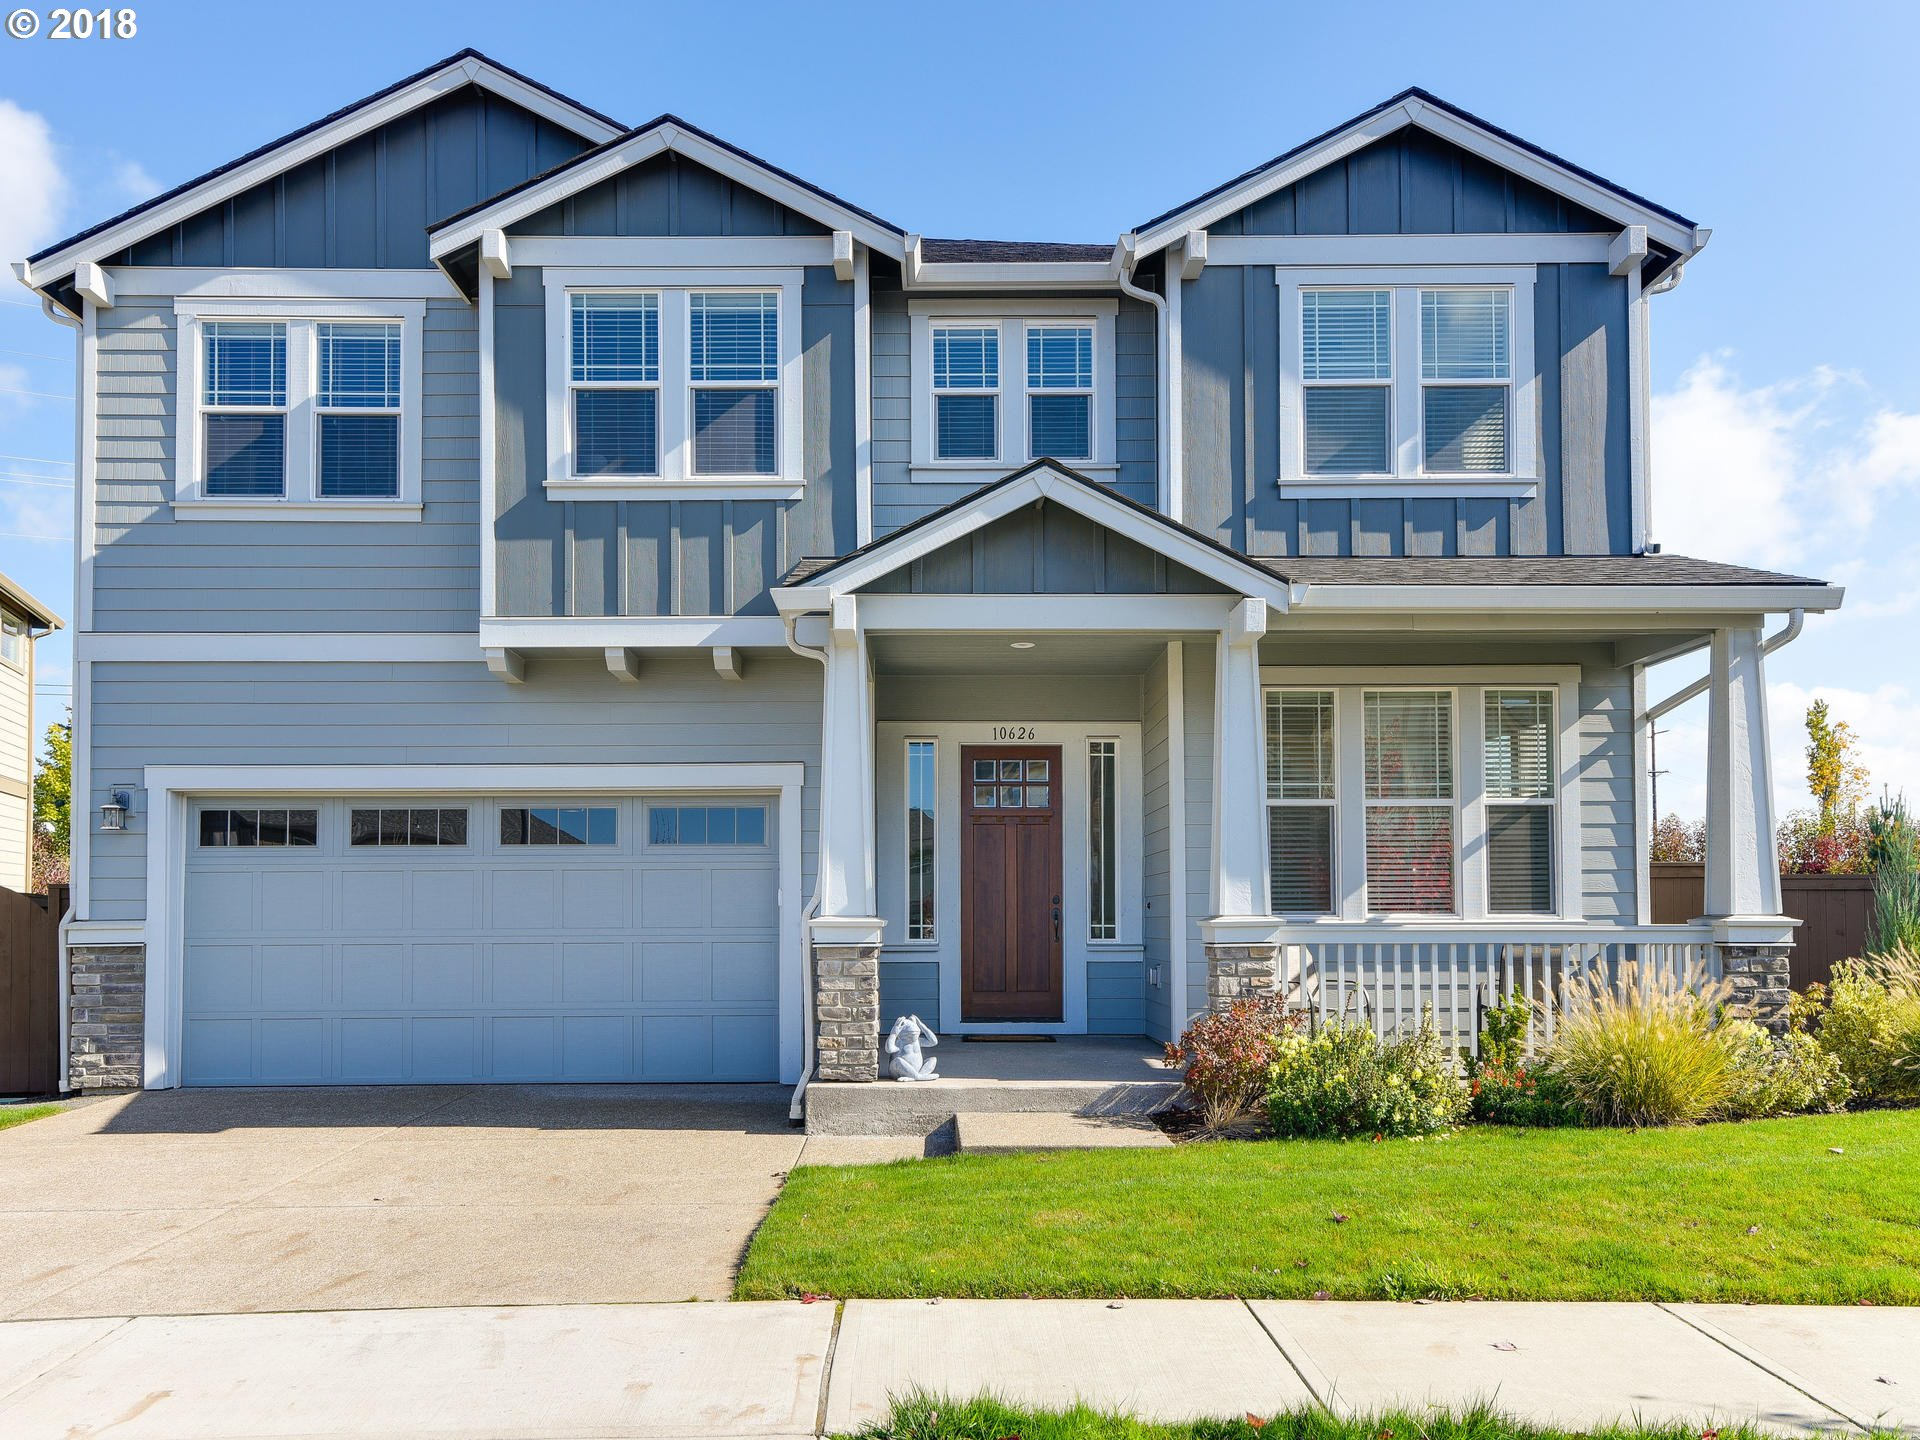 OPEN Saturday 10/13, 11-1 Beautifully  crafted North Plains property in the newer Sunset Ridge Development. Multiple upgrades include hardwoods on main, stone kitchen counters, wooden blinds, stainless appliances, & central AC. Open concept on main with 4 bedrooms & 2 baths on the 2nd, along w/ a loft & a Den/Office/Family Room + laundry. 2 car garage w/ storage room. Close proximity to children's park, wetland preserve, & local schools